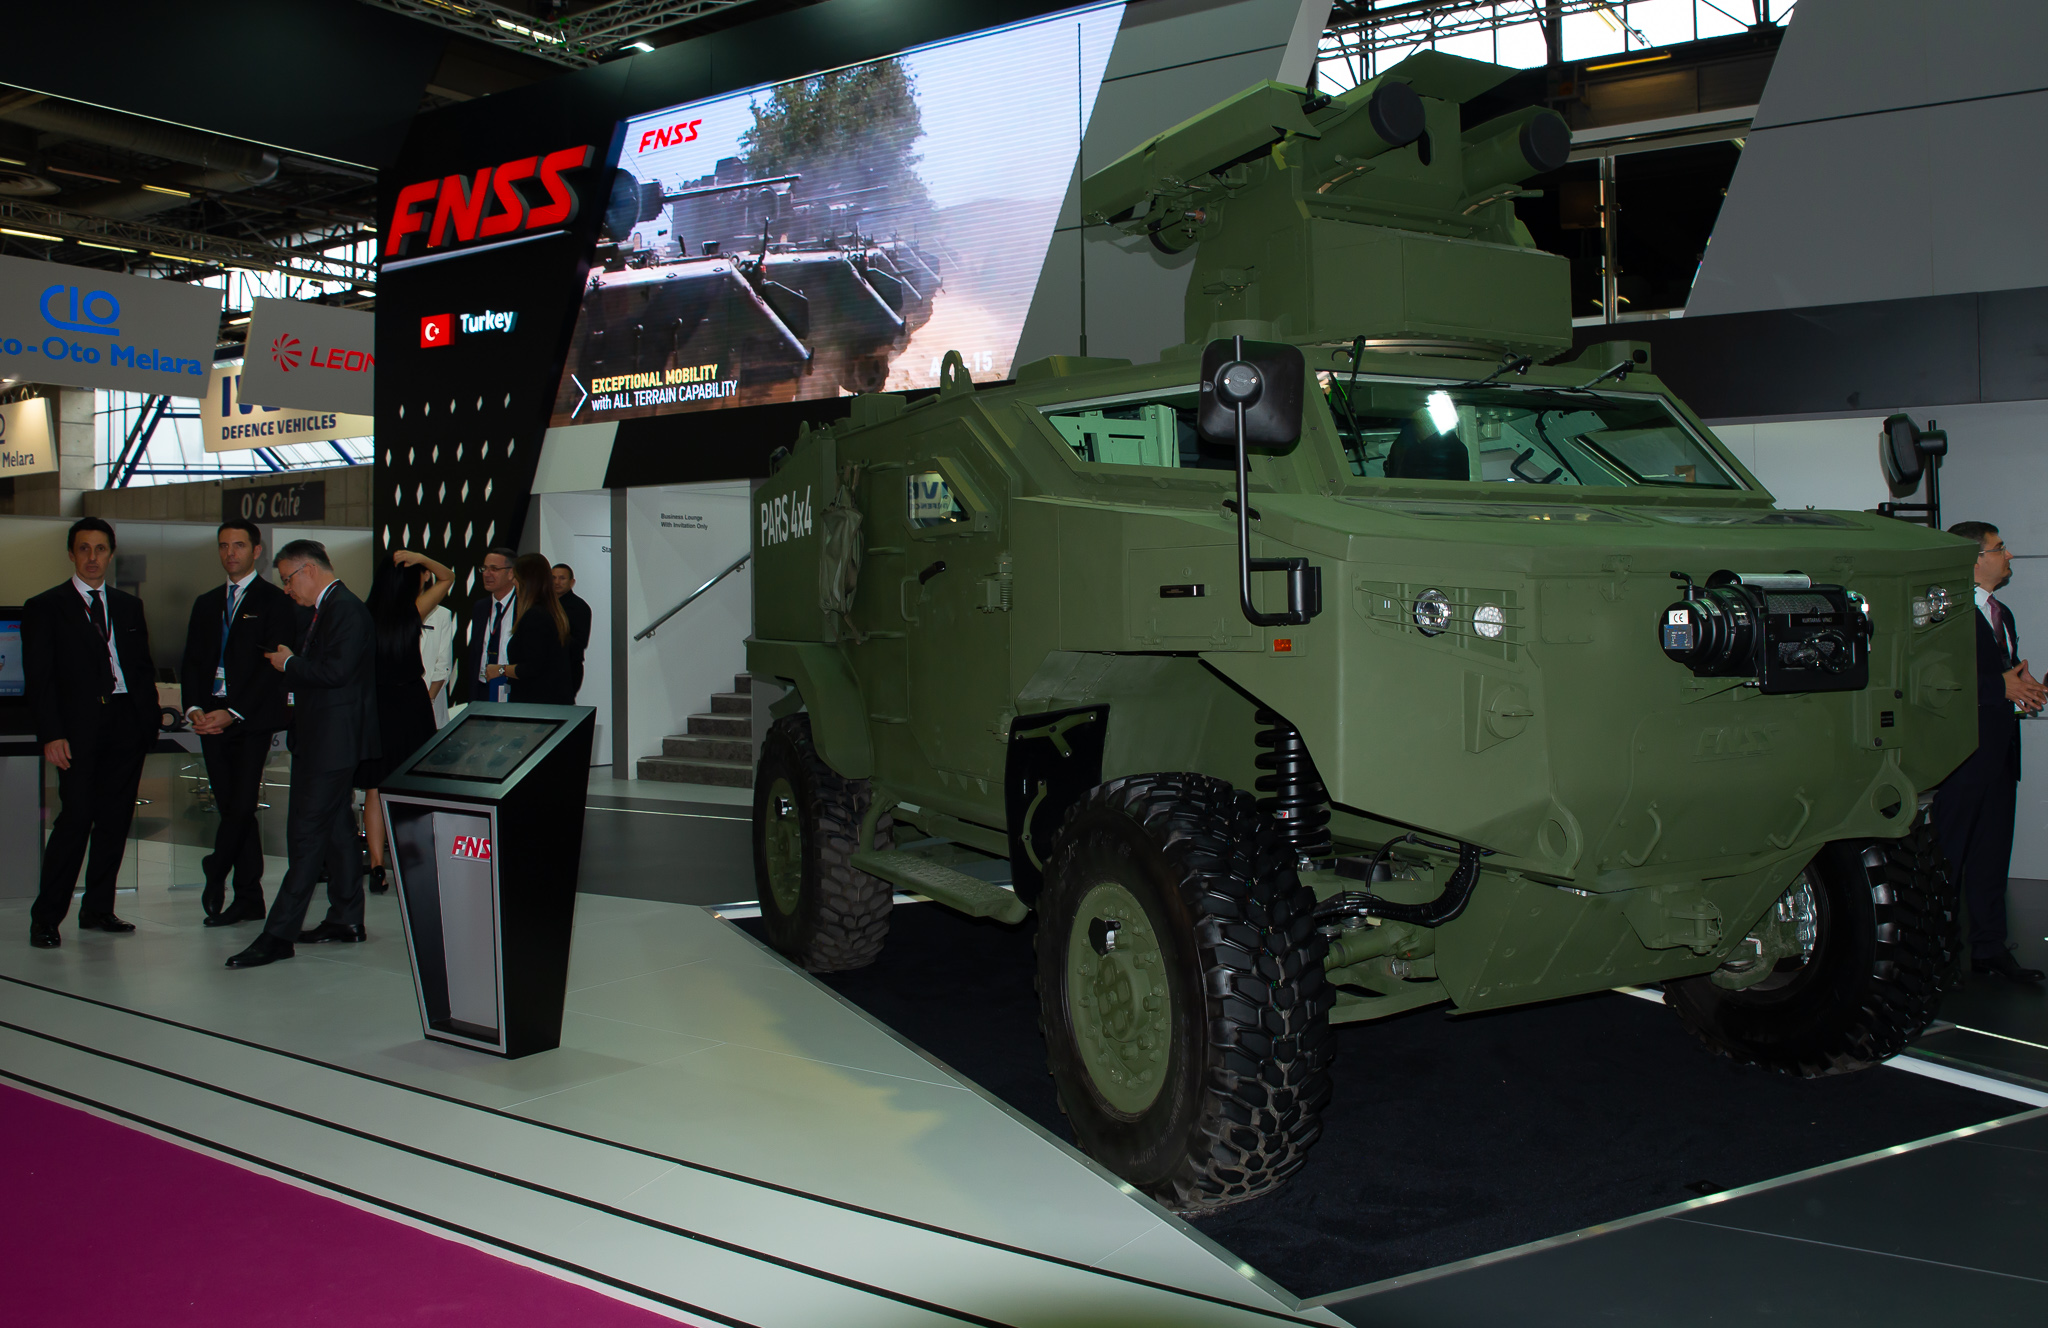 FNSS Launched PARS 4x4 Anti-Tank Vehicle Developed for Anti-Tank Vehicle Project at Eurosatory 2018